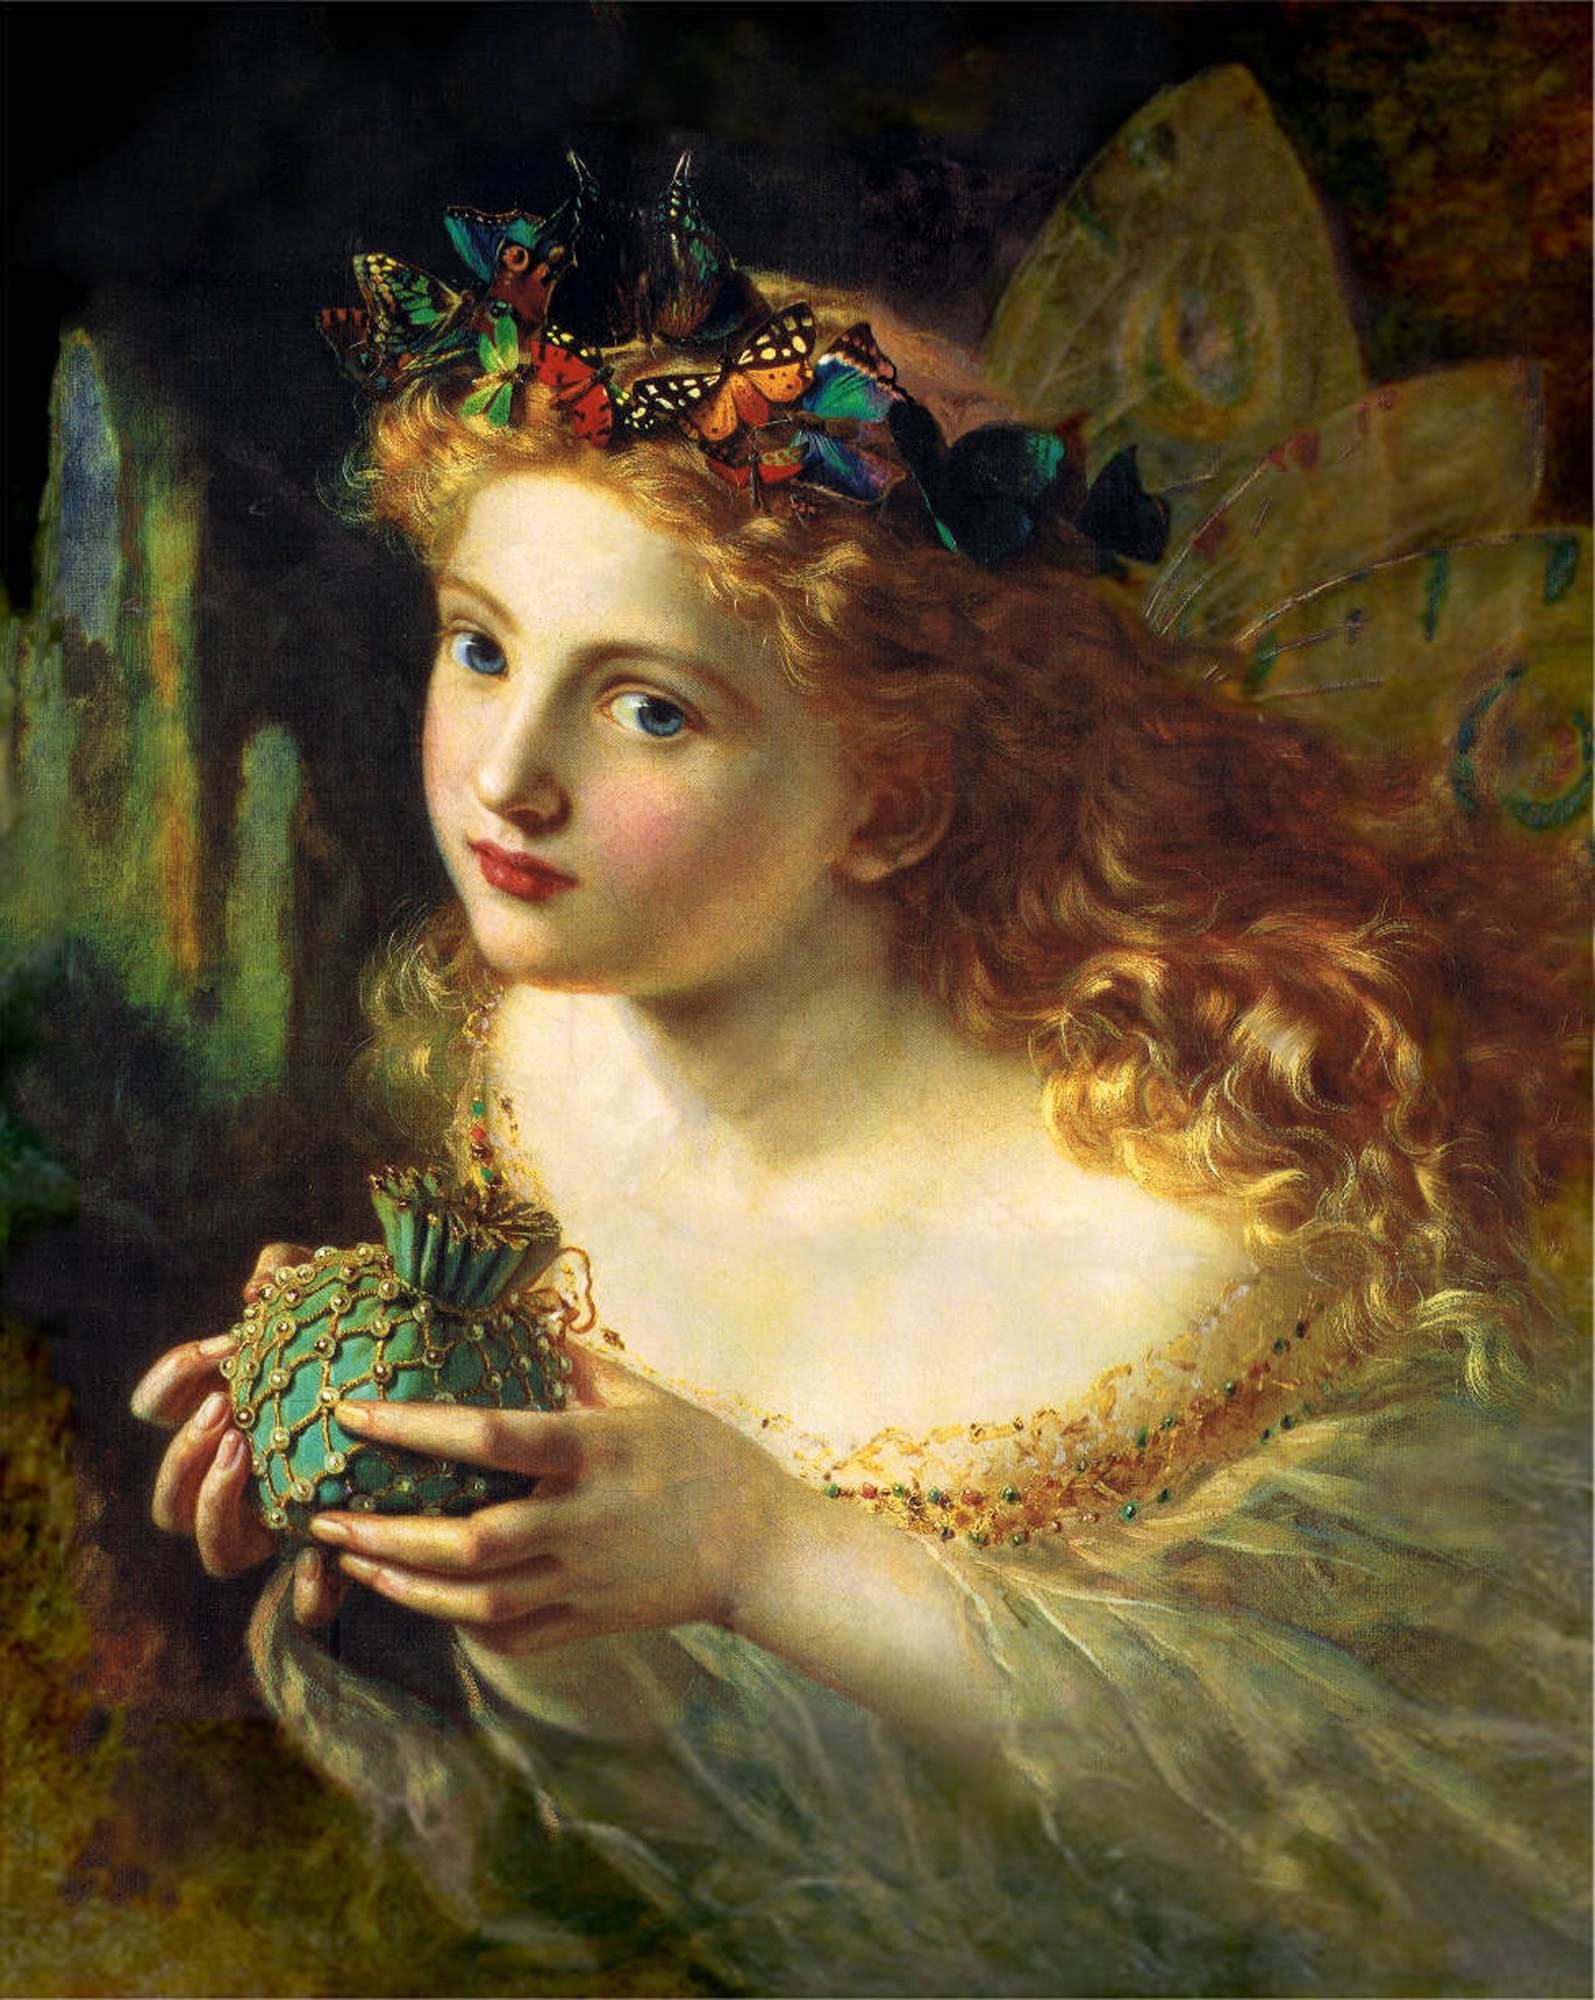 Fairy (image from wikipedia)